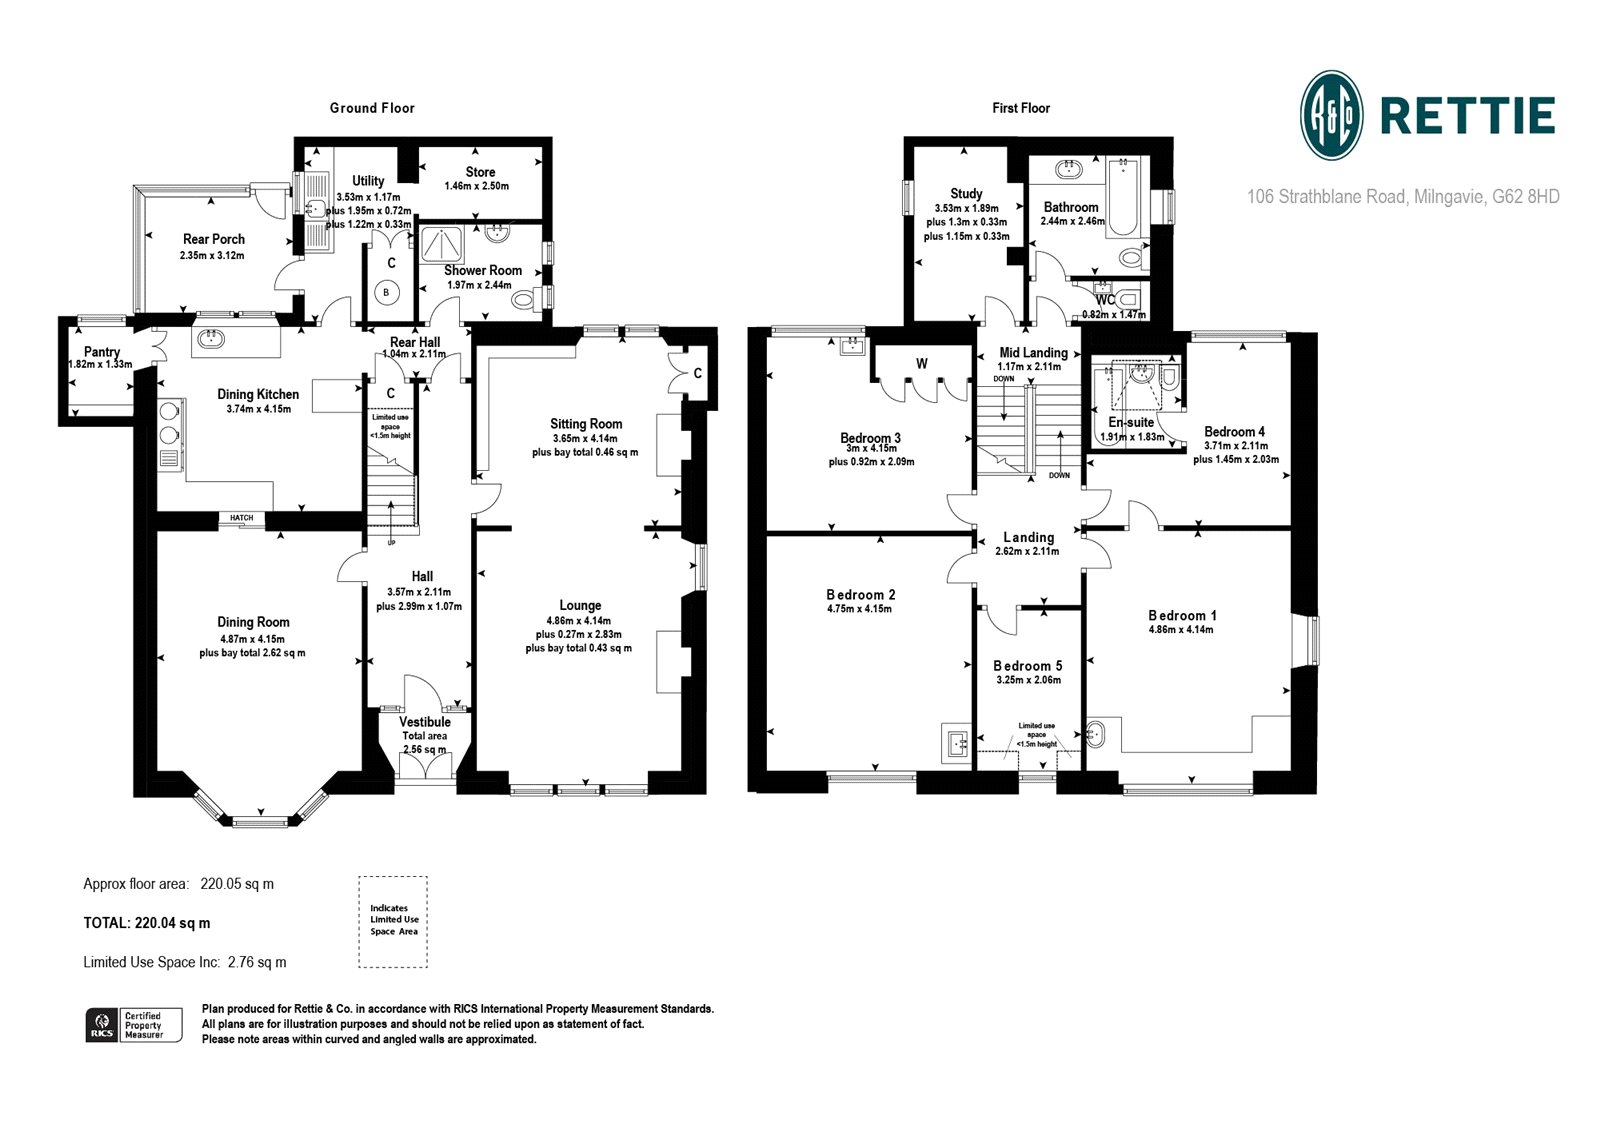 Floorplans for Strathblane Road, Milngavie, Glasgow, G62